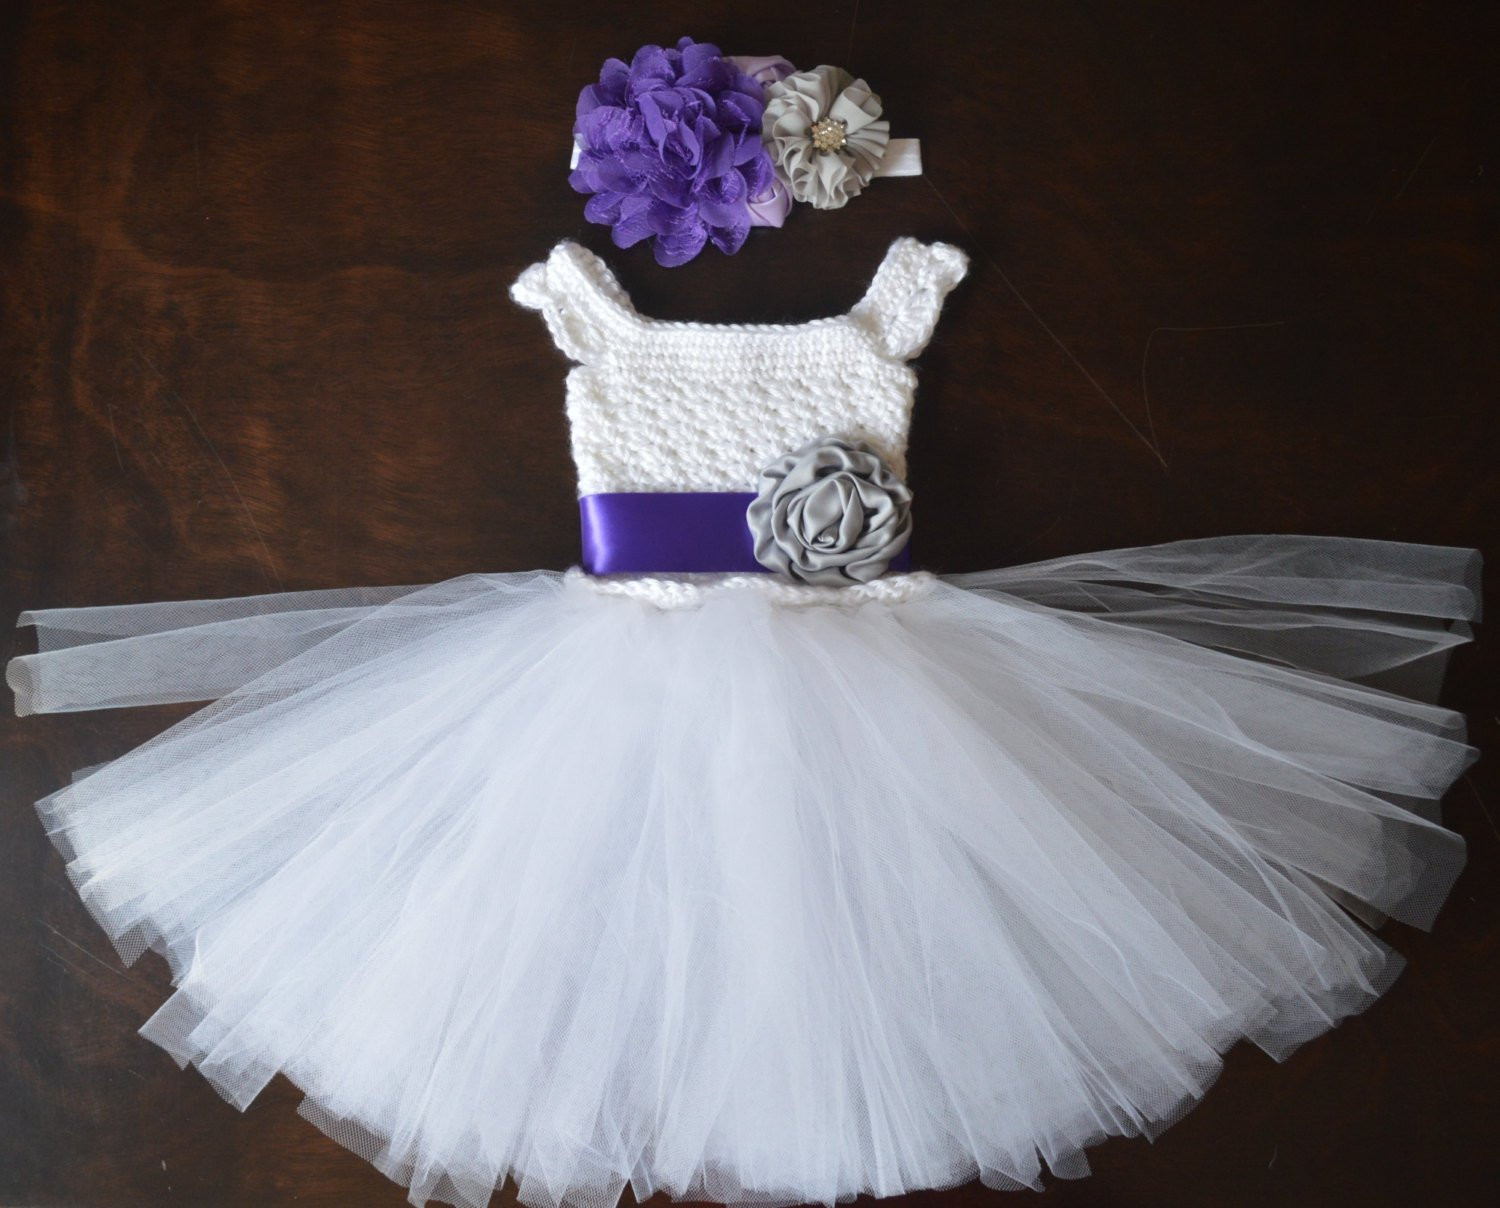 Unique Crochet Tulle Tutu Flower Girl Dress Baby Costume Handmade Crochet tops for Tutus Of Adorable 45 Models Crochet tops for Tutus